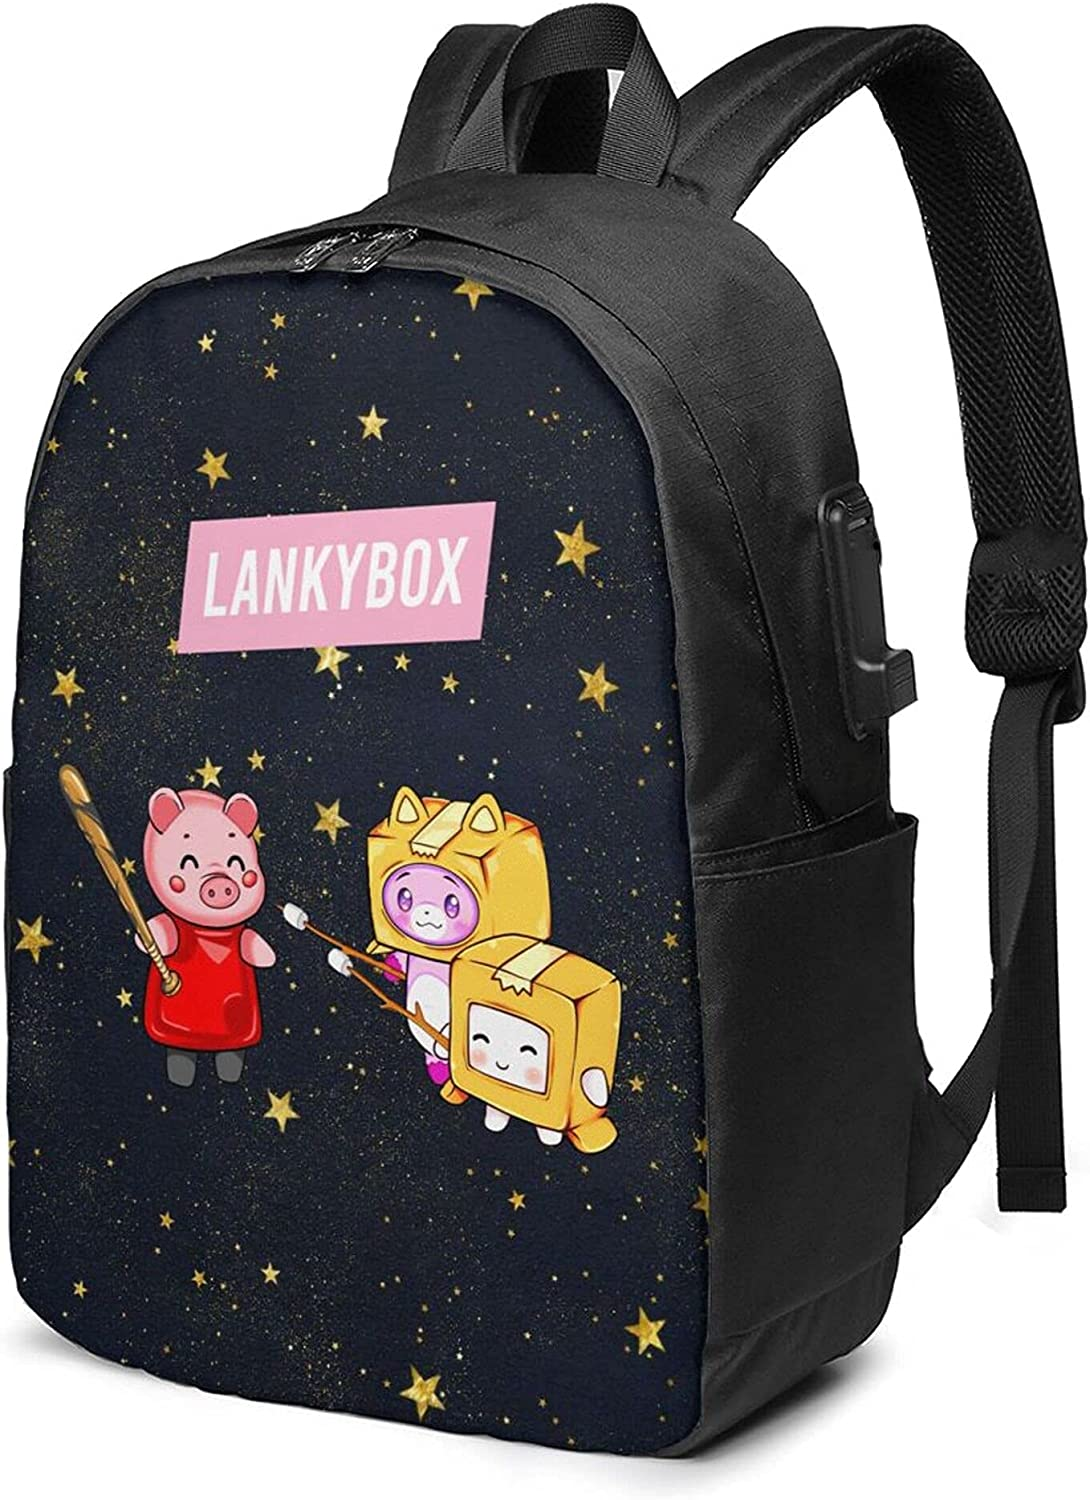 Kid Schoolbag Child Casual Backpack ! Super beauty product restock quality top! Free Shipping New Anti Theft Fox-Y U Lankyb-Ox